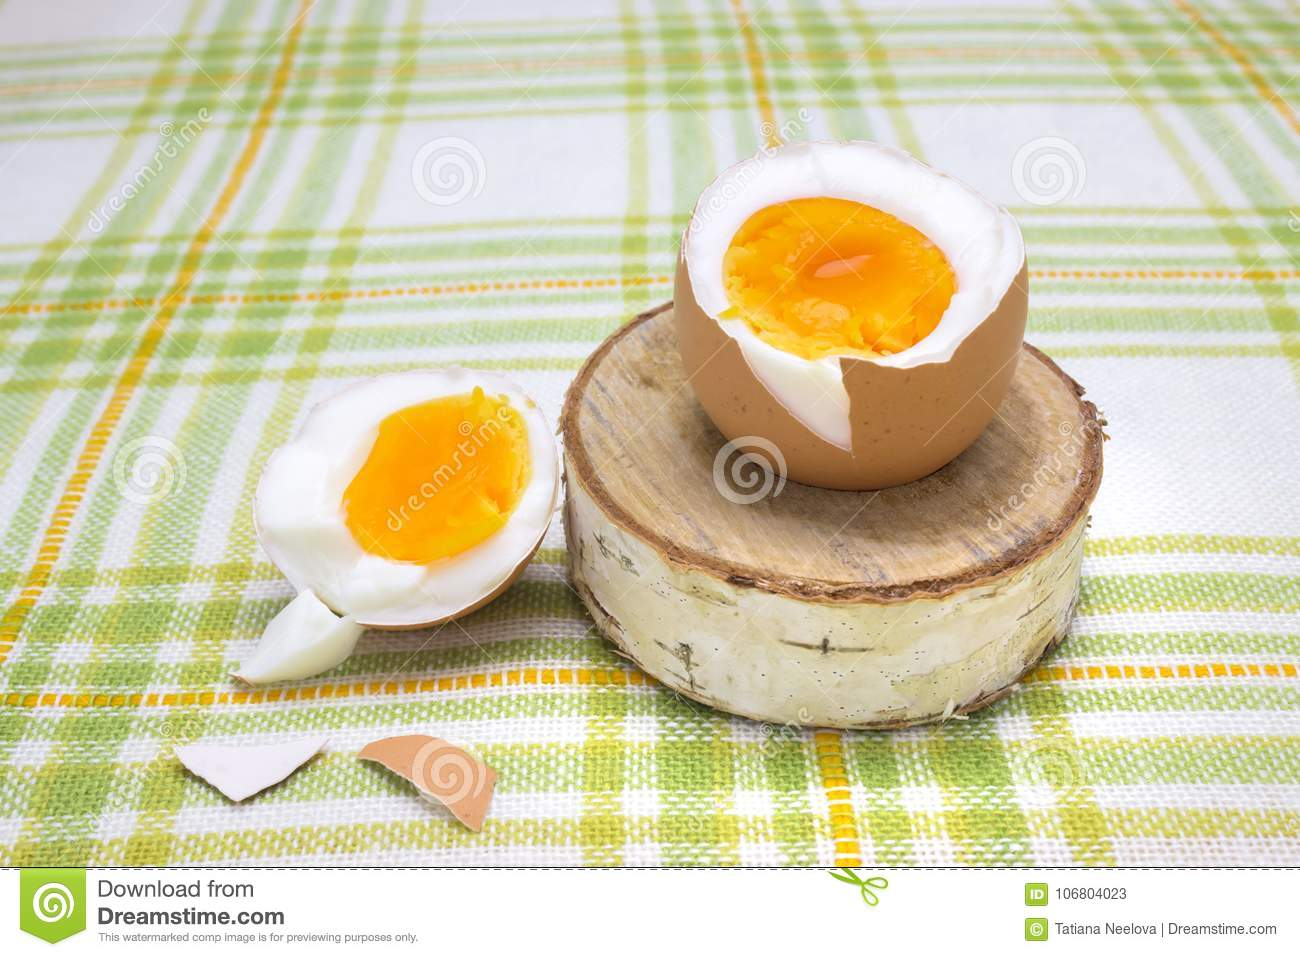 Boiled fresh egg for the breakfast on the wooden birch stand for eggs. Broken beige hen egg and pieces of shells, bright orange yo